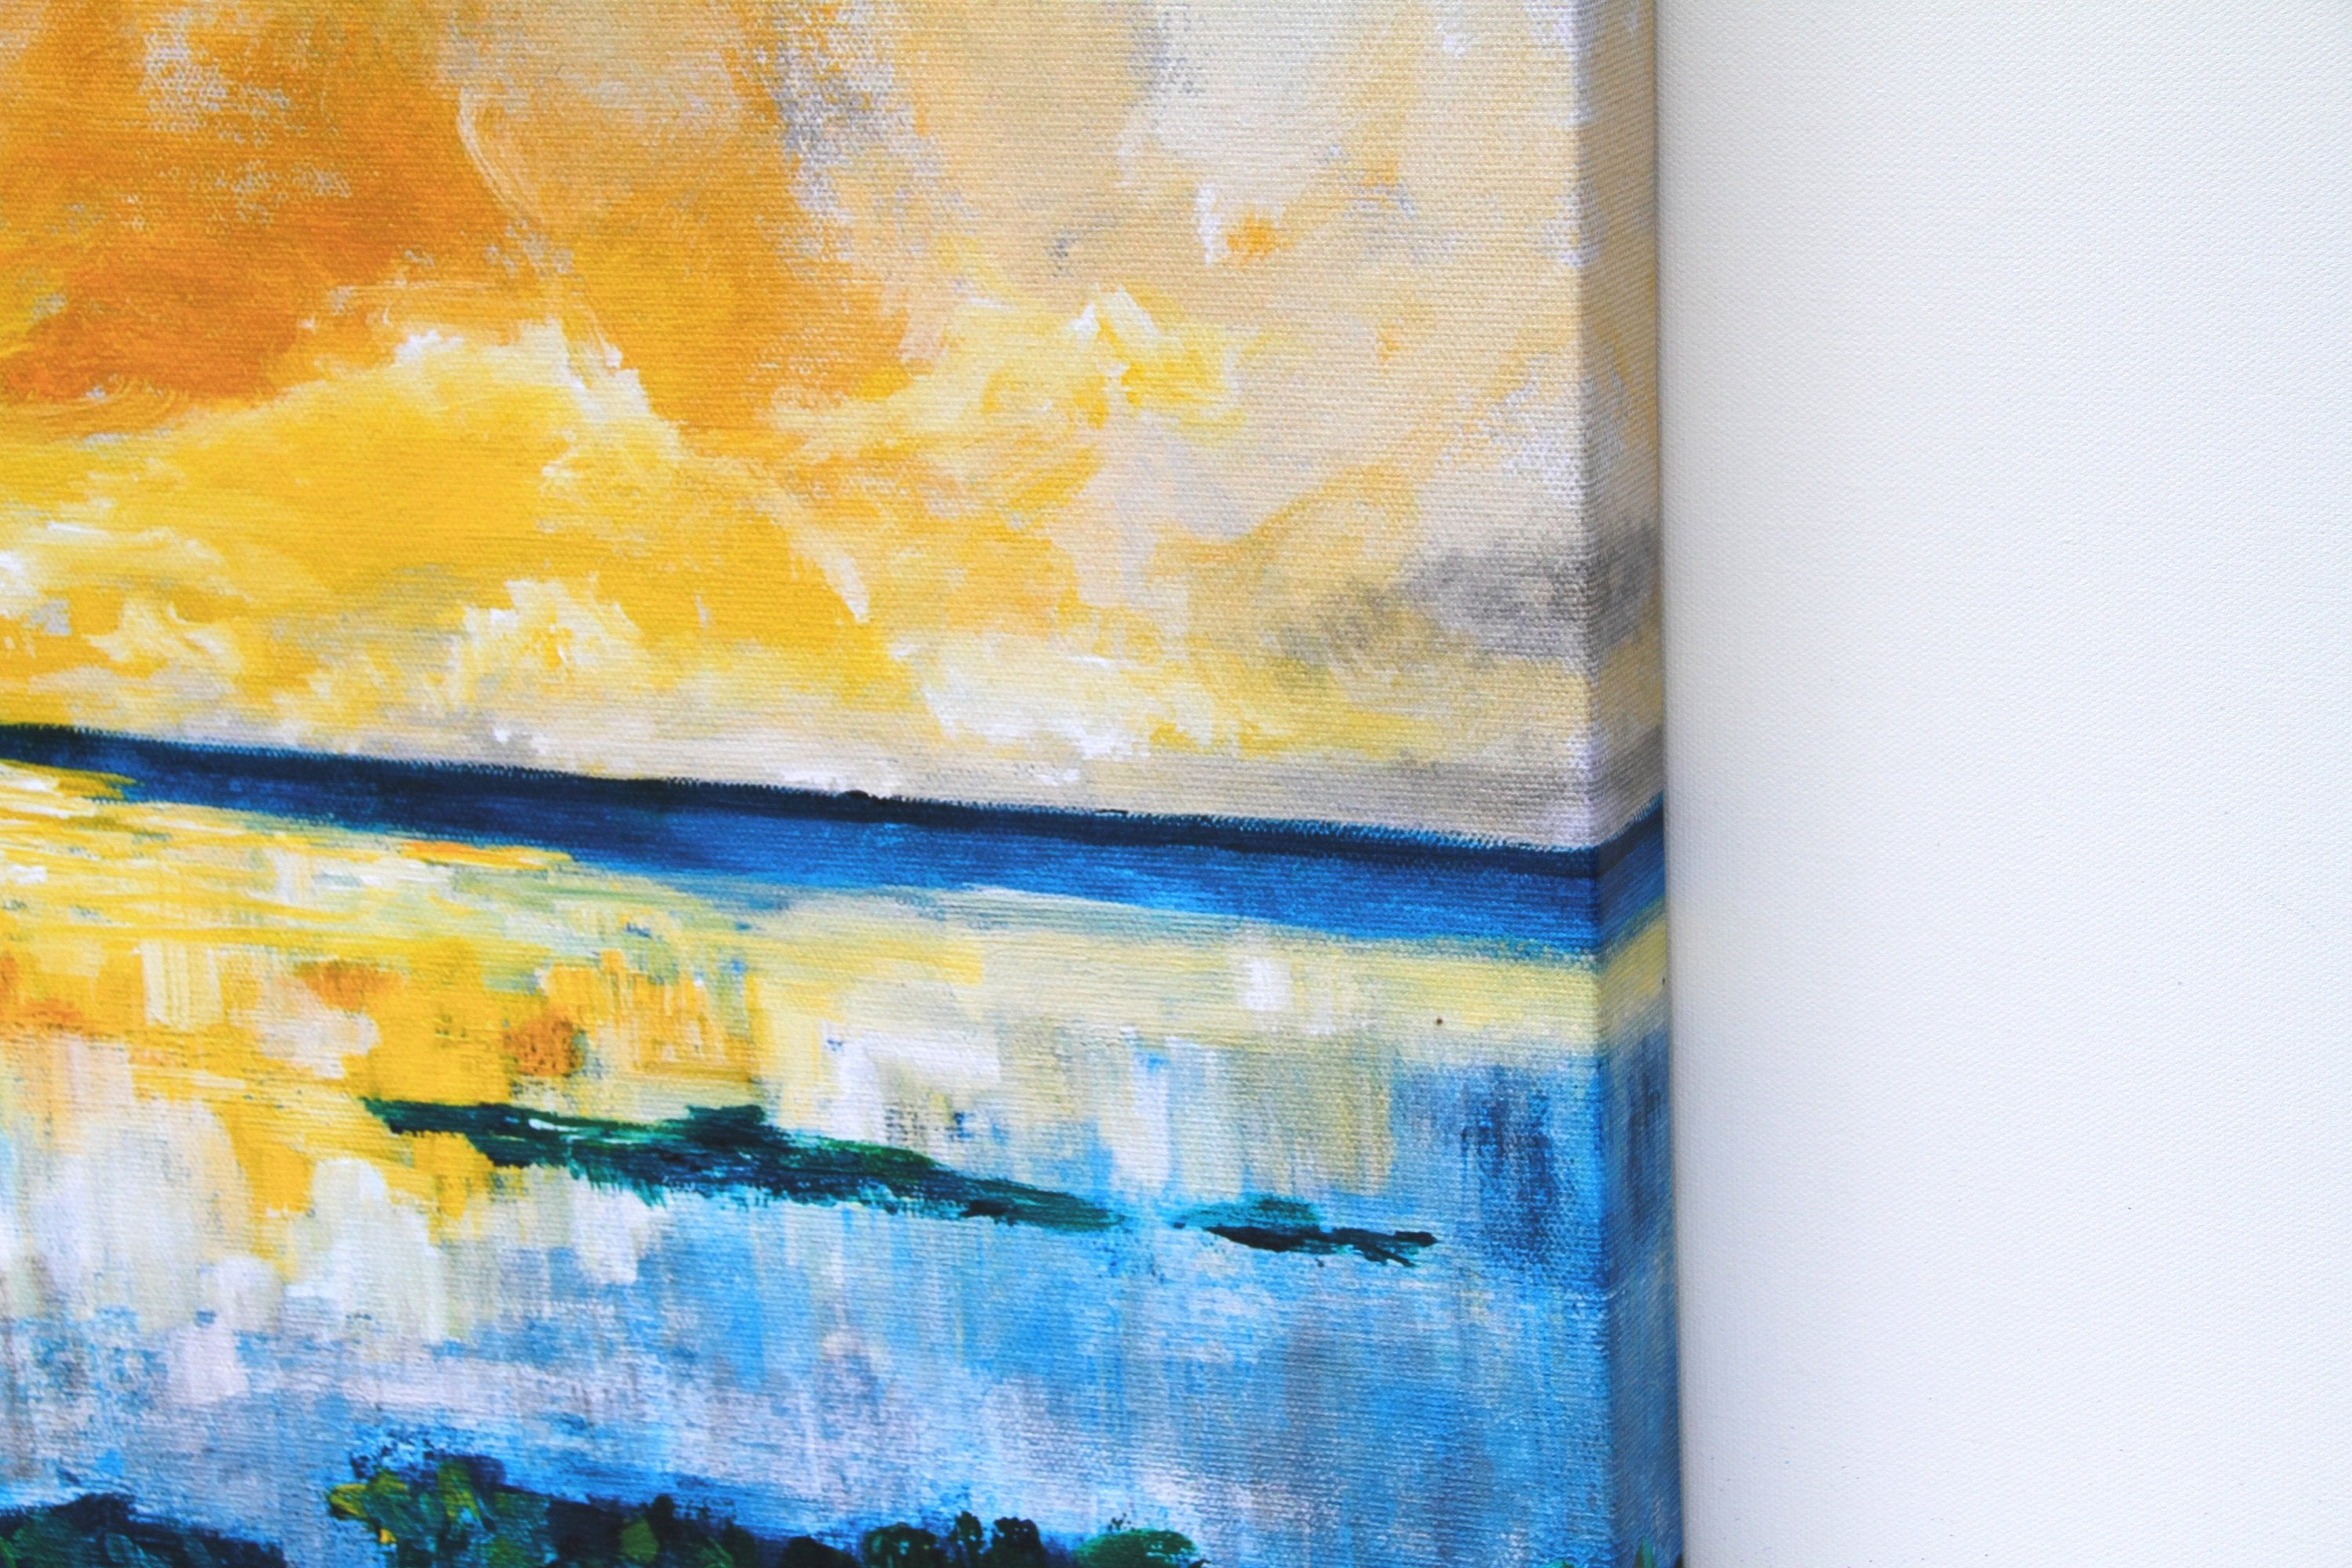 GALLERY WRAP OPTION, Pick An Image, Pick a Size, Save Money, No Framing, Ready to Hang, Free Shipping, Coastal Art, Art by Alexandra Nicole